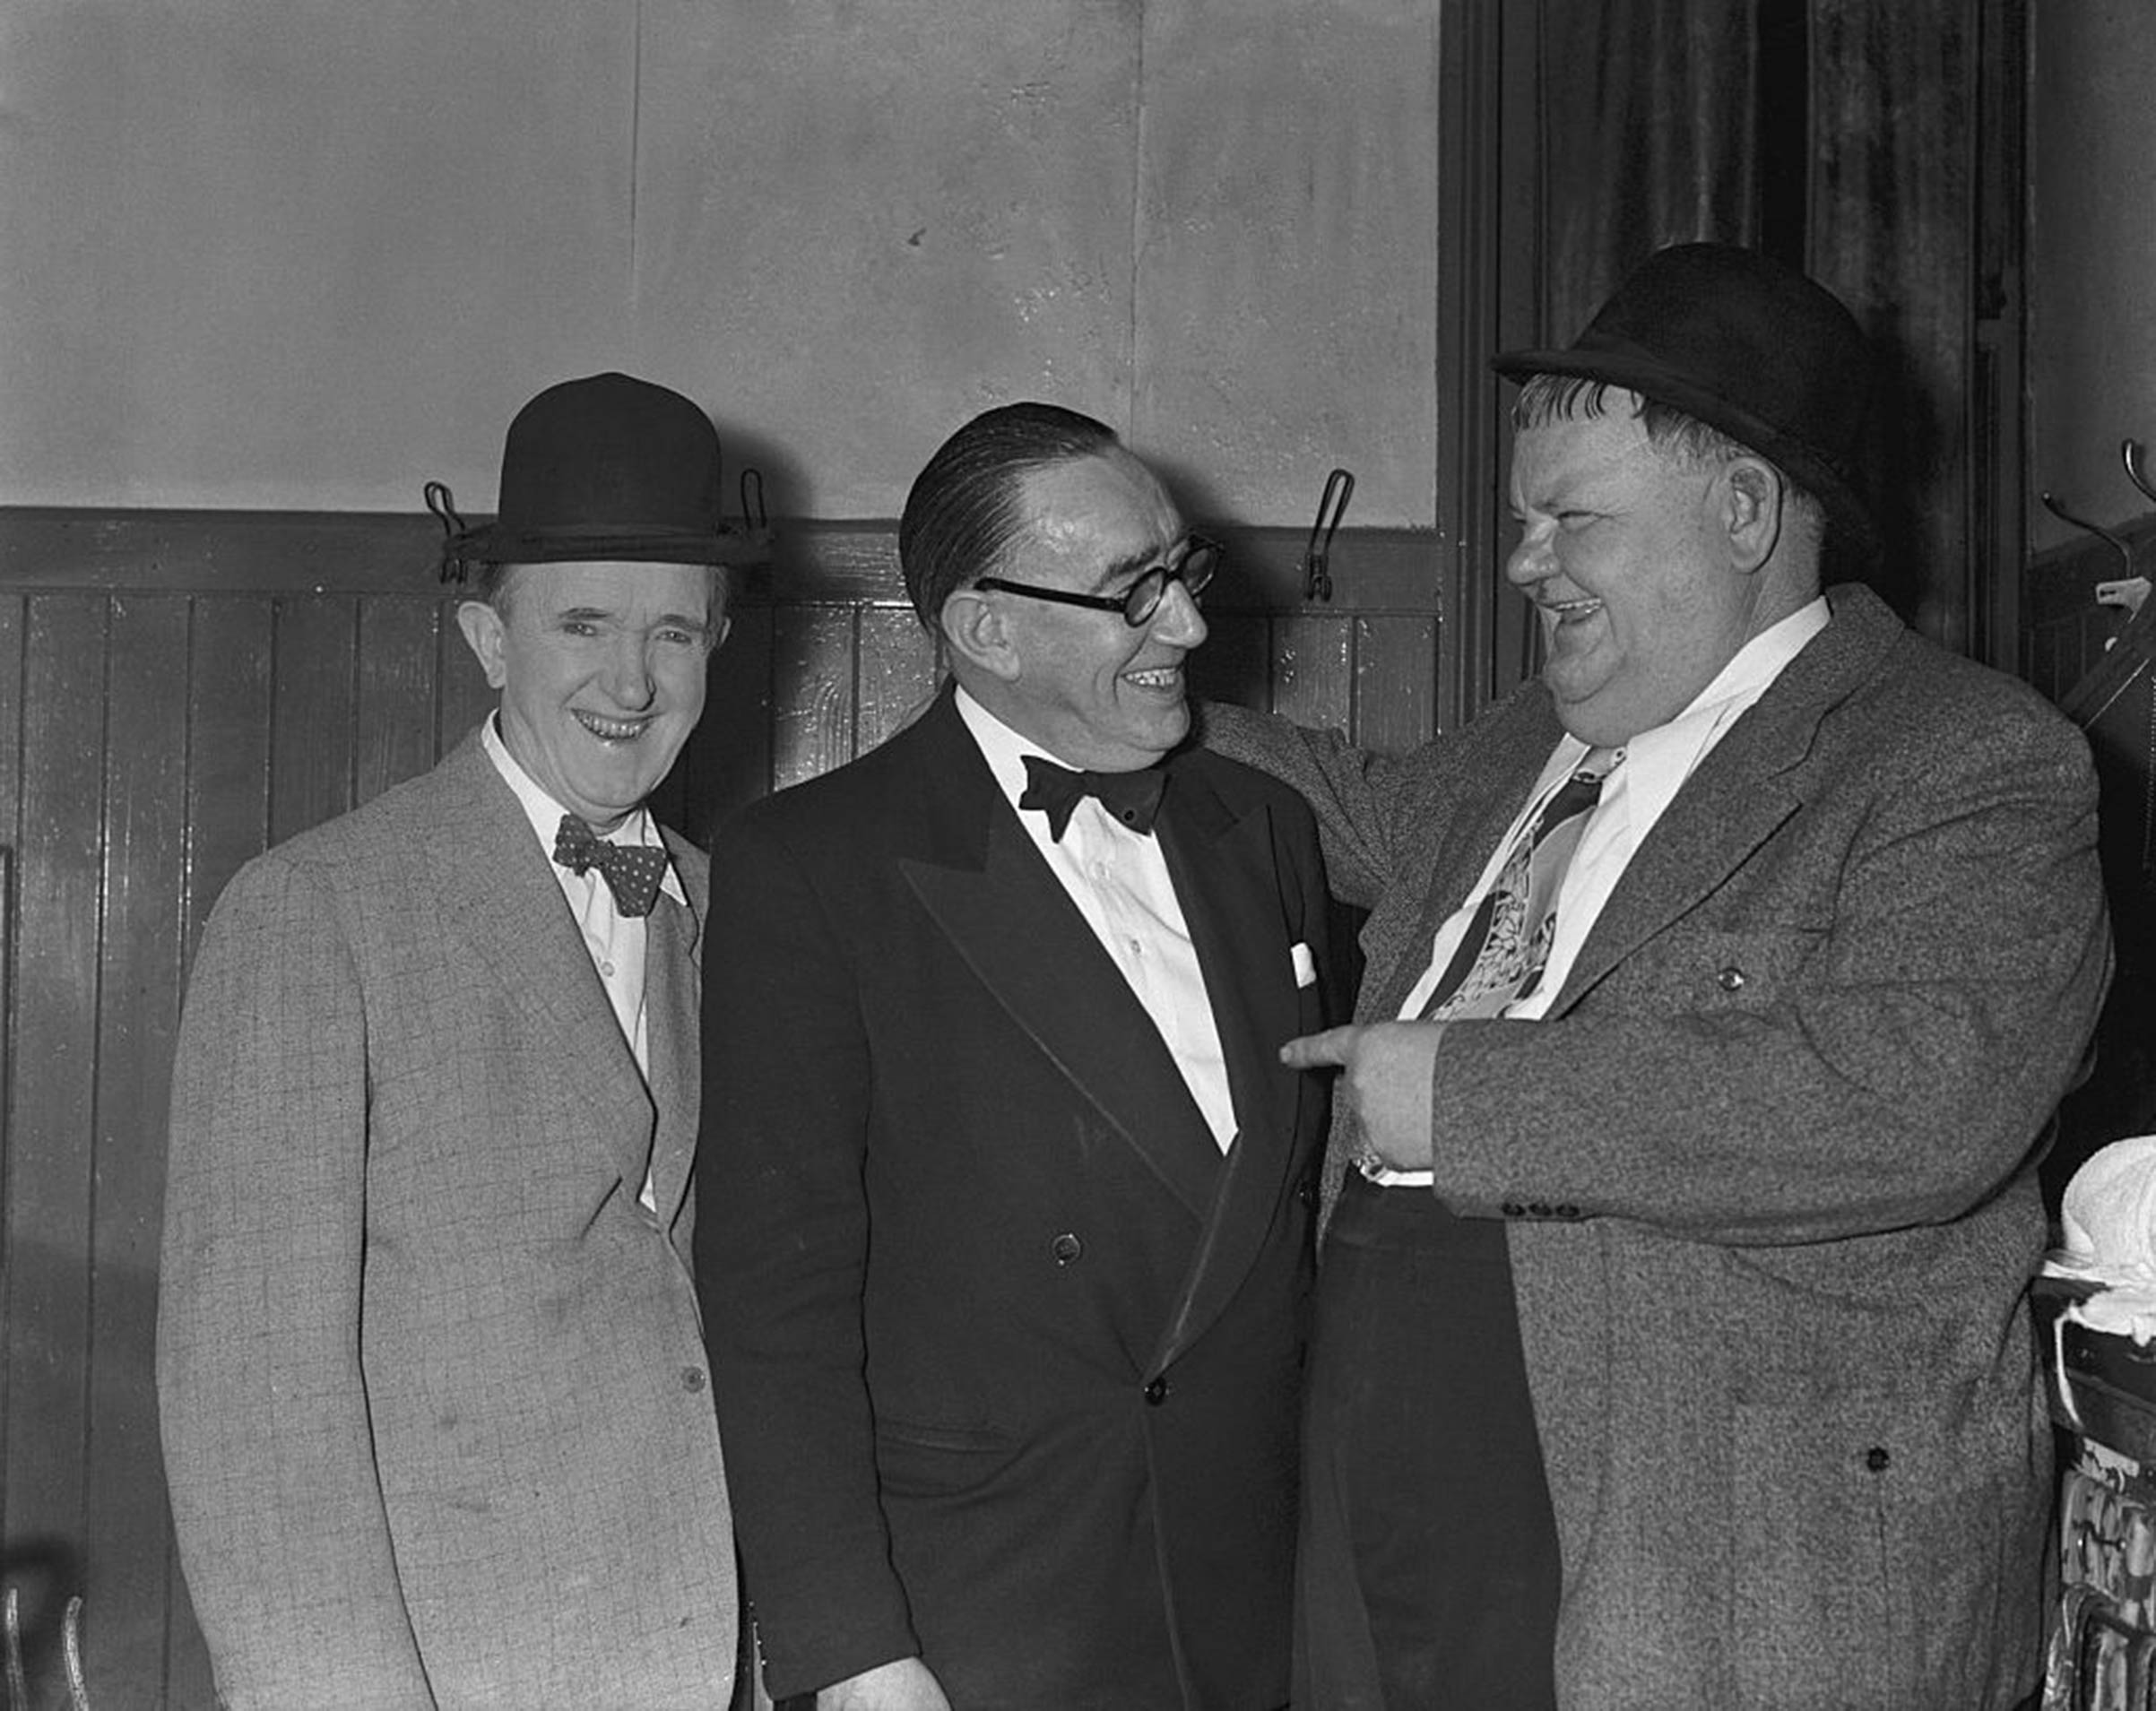 Stan Laurel (left) and Oliver Hardy (right) shortly after performing at the Empire theater in Nottingham, England, in Aug. 1953 during their U.K. tour.